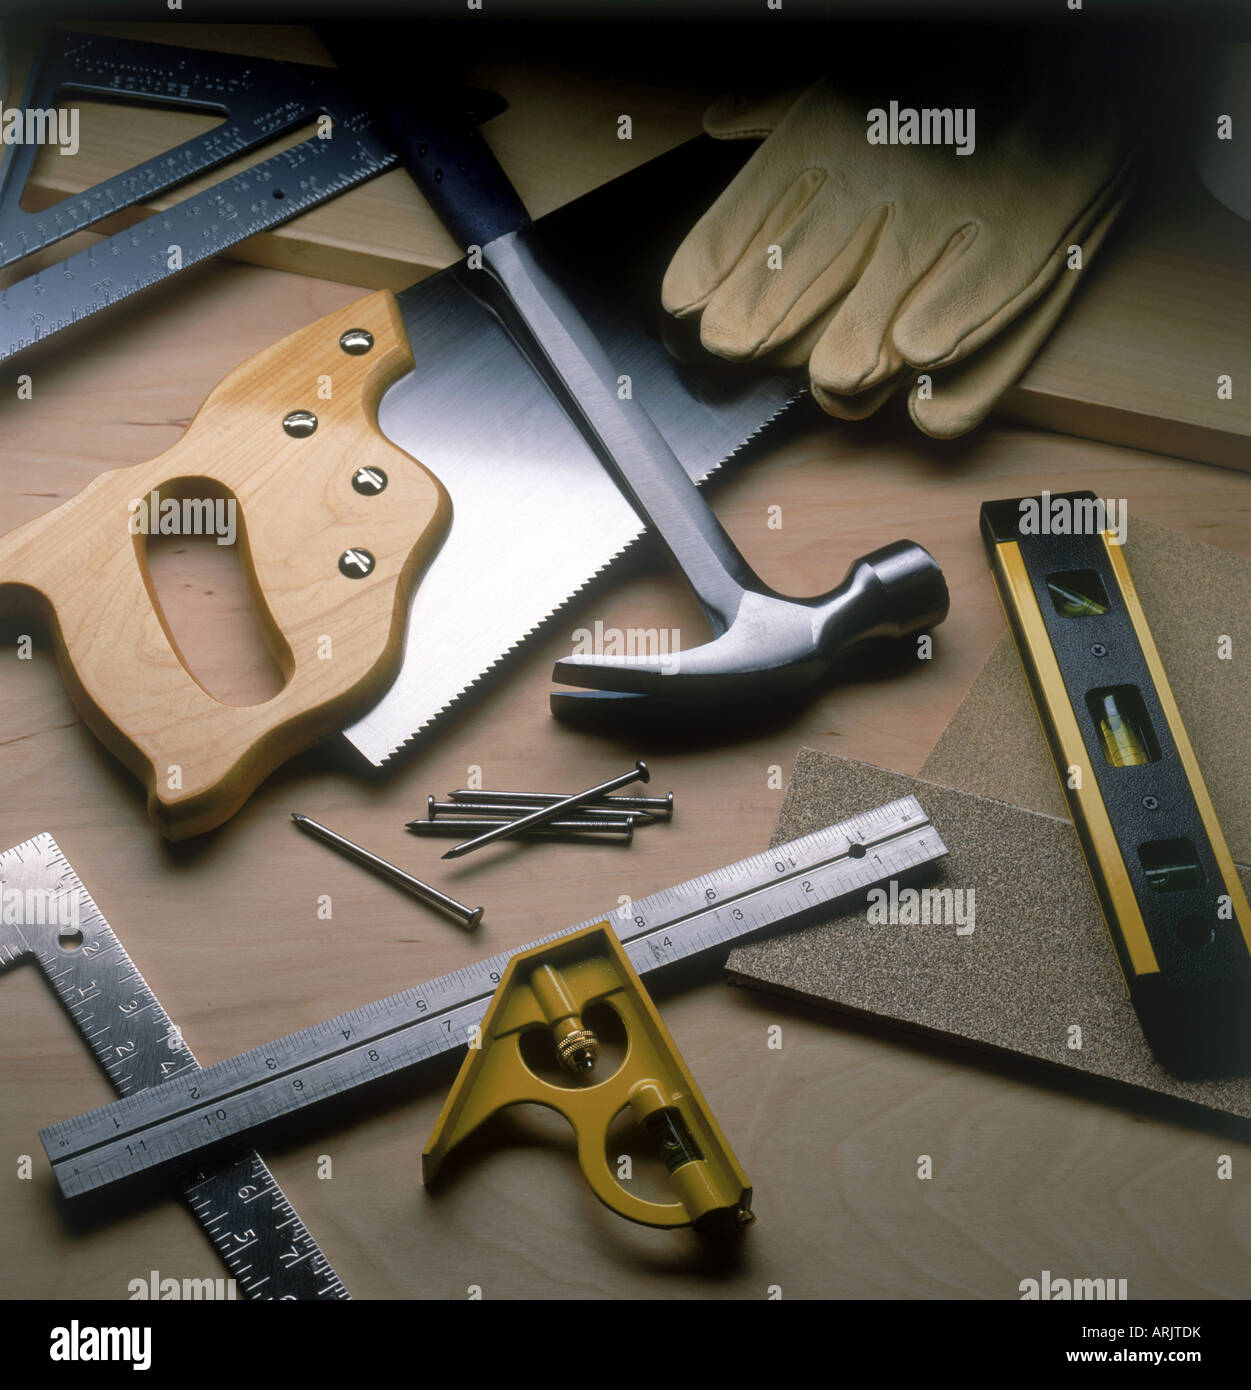 Tools - Stock Image